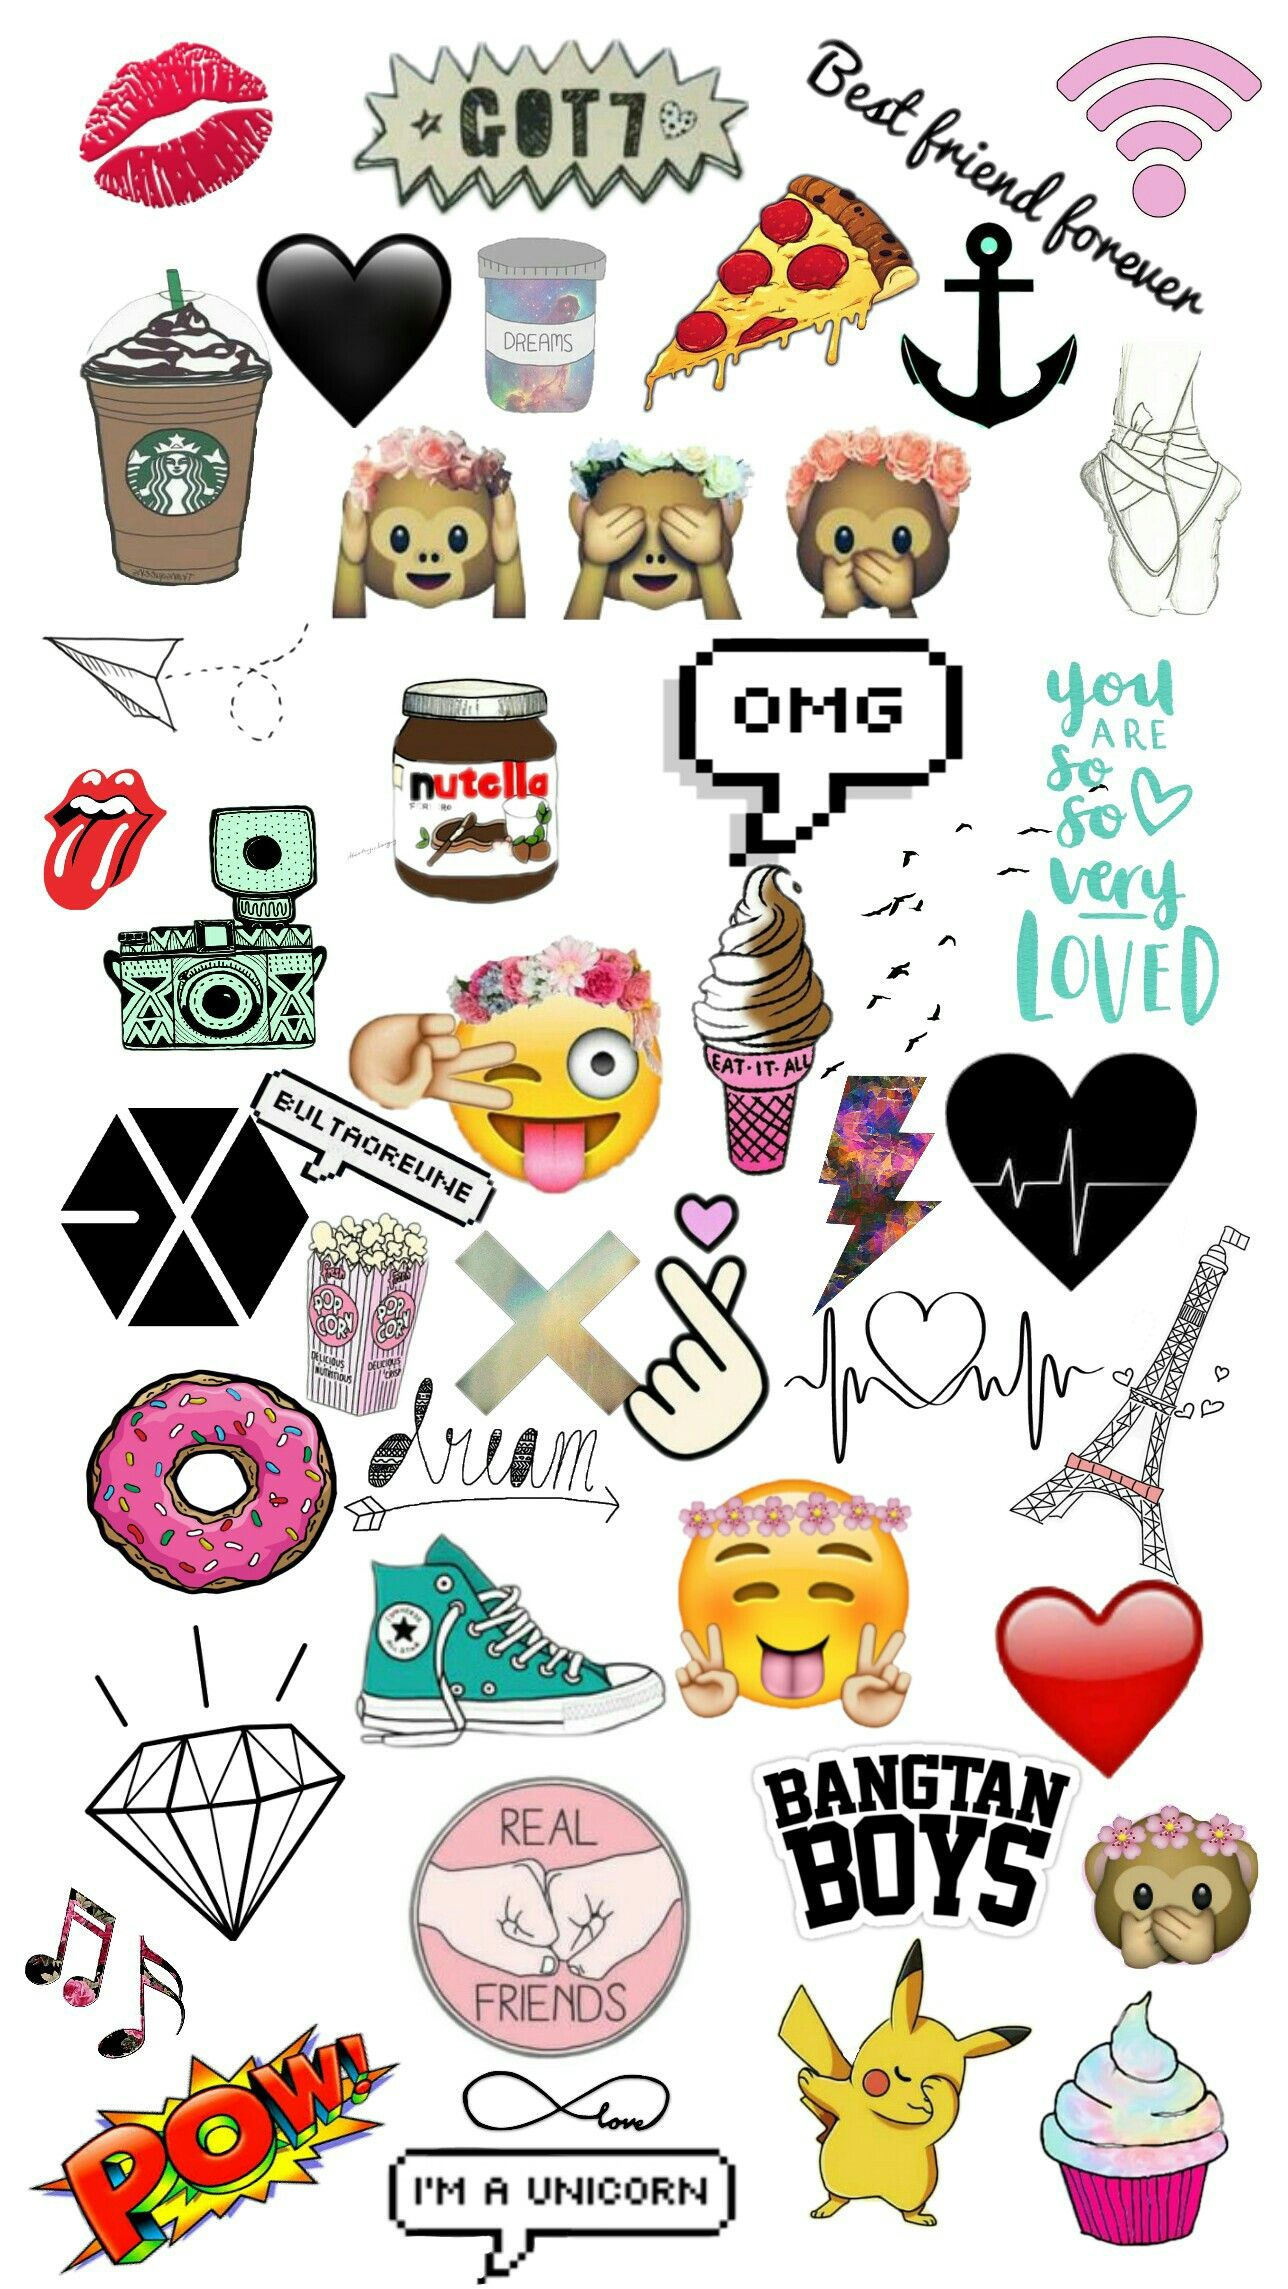 Wallpaper Fofos Bts Got7 Exo Bestfriend Kpop Bday Bags